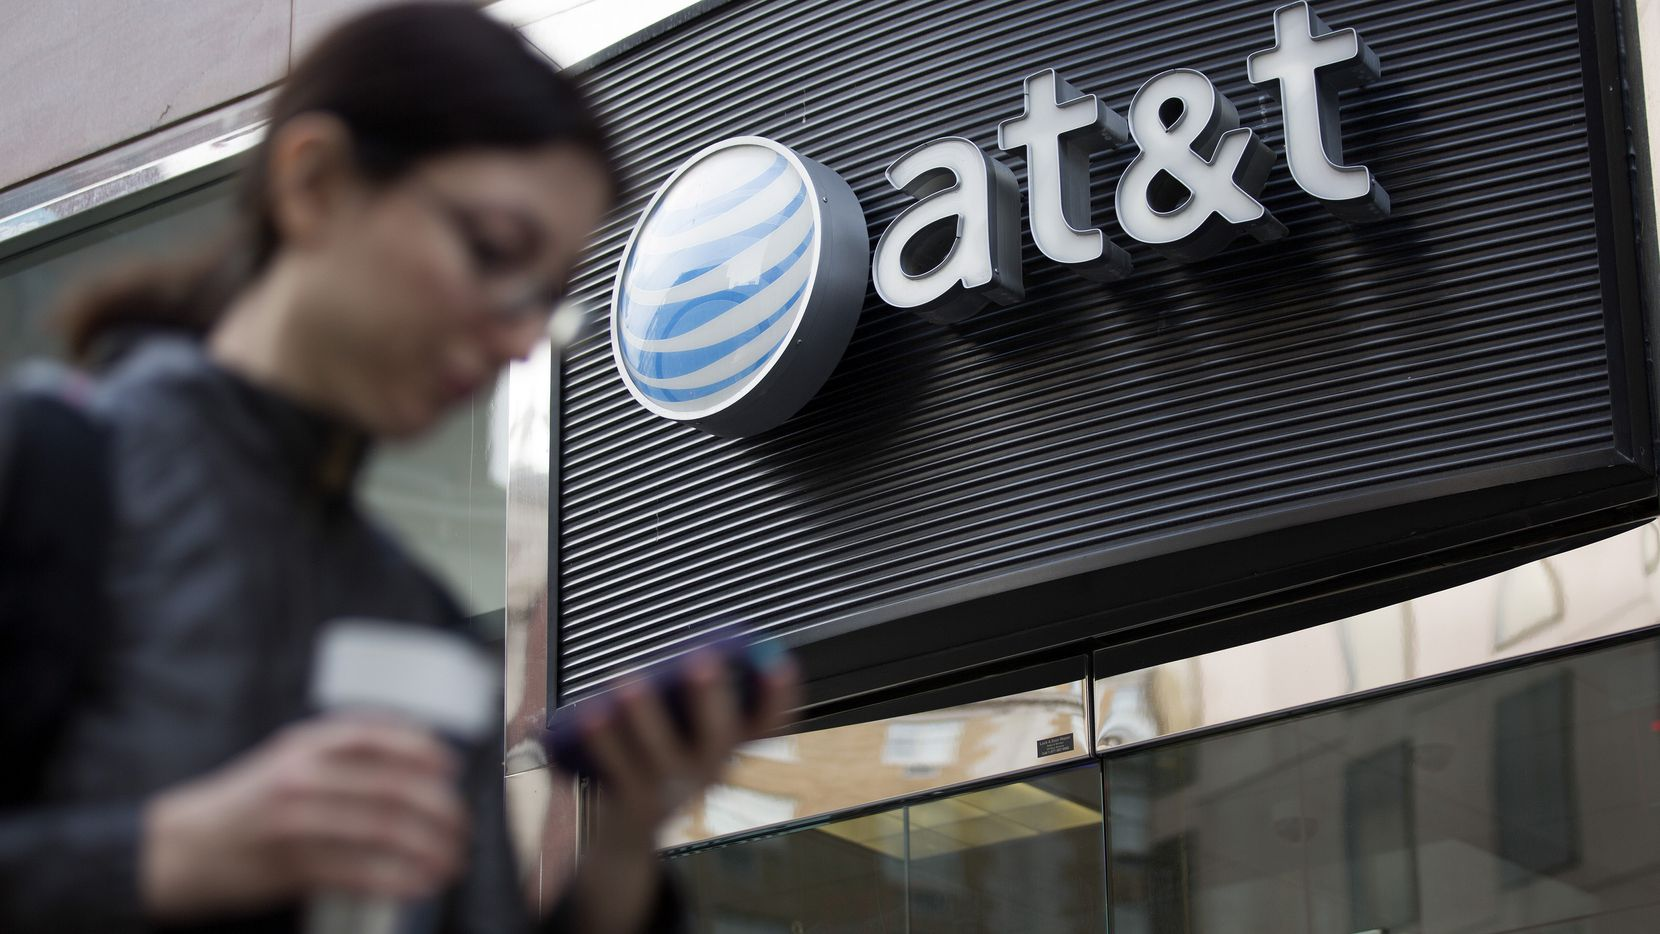 A pedestrian looks at a mobile phone while walking past an AT&T Inc. store in Washington, D.C., U.S., on Thursday, Oct. 23, 2014. AT&T Inc., the second-largest U.S. wireless carrier, missed profit estimates and cut its sales forecast as promotions and price cuts took a toll. Photographer: Andrew Harrer/Bloomberg 11152014xBRIEFING